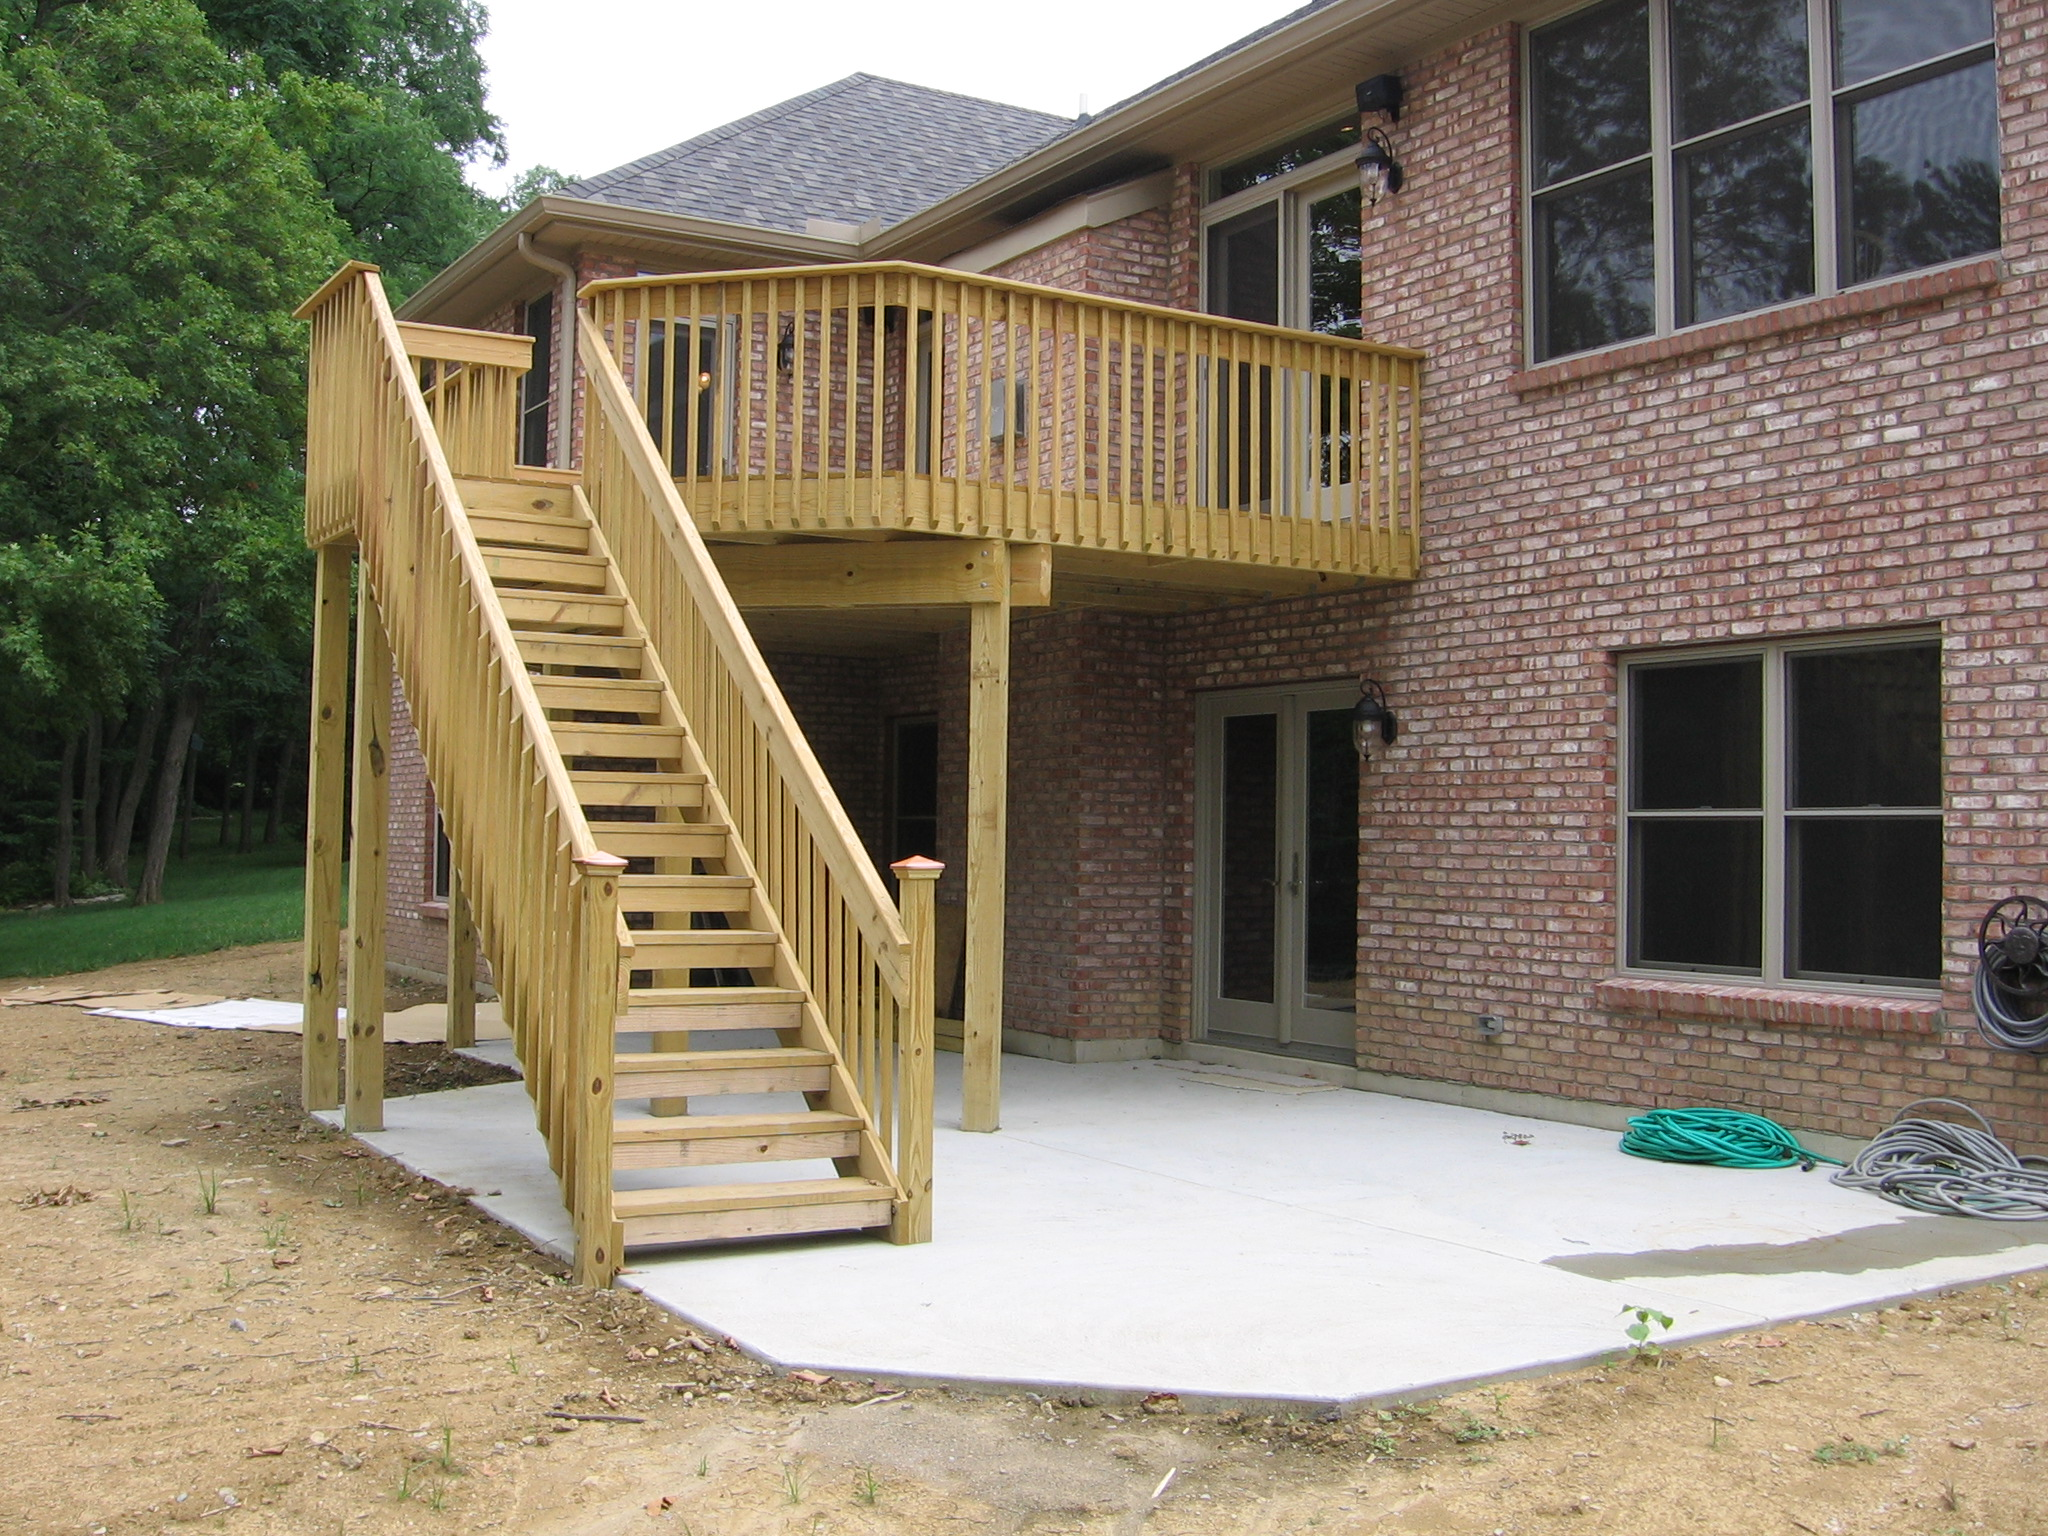 Deck Construction Ideas Deck Design And Ideas - Building deck stairs railing